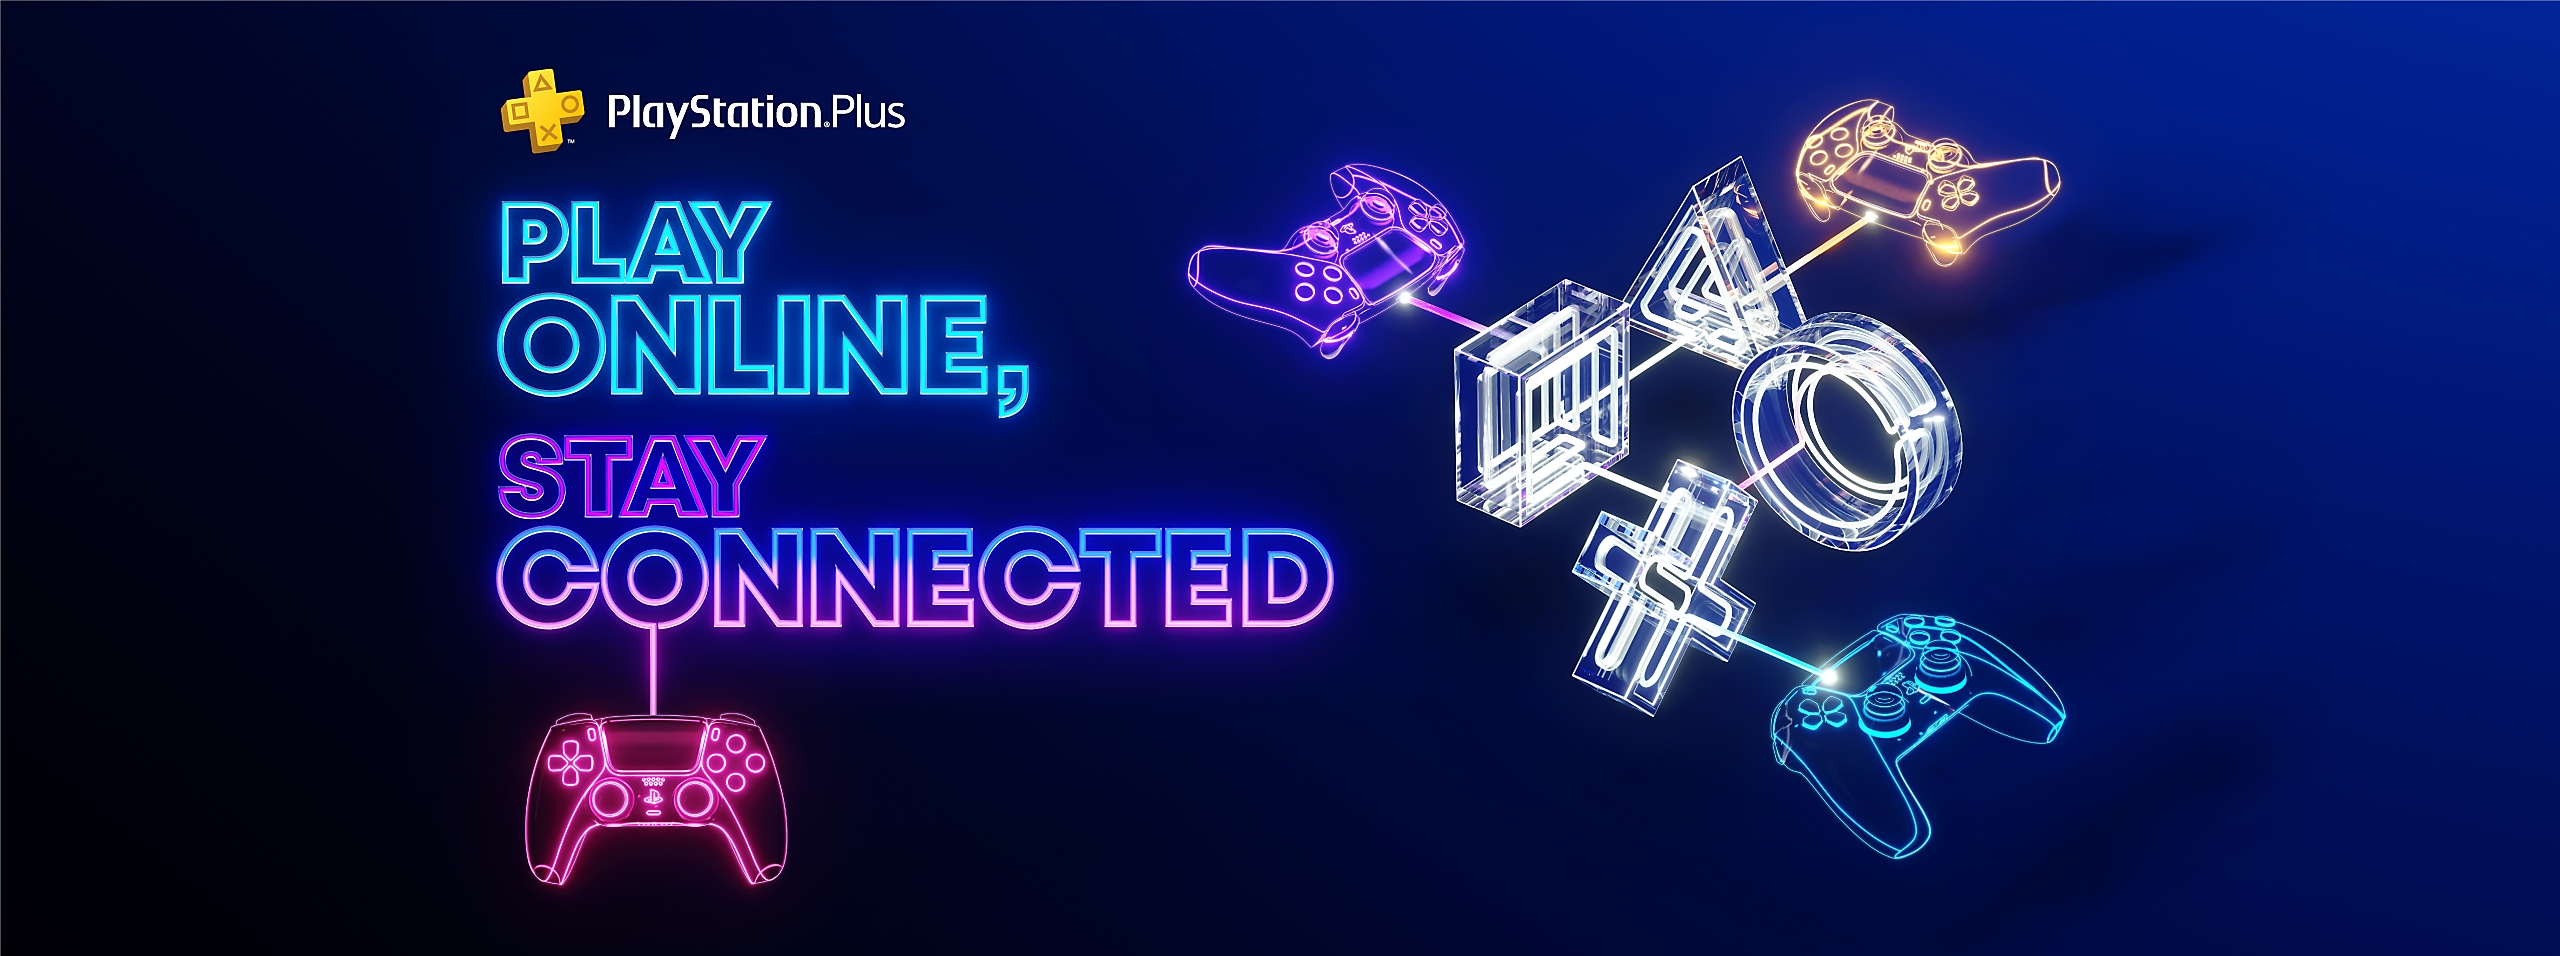 Play Online Stay Connected